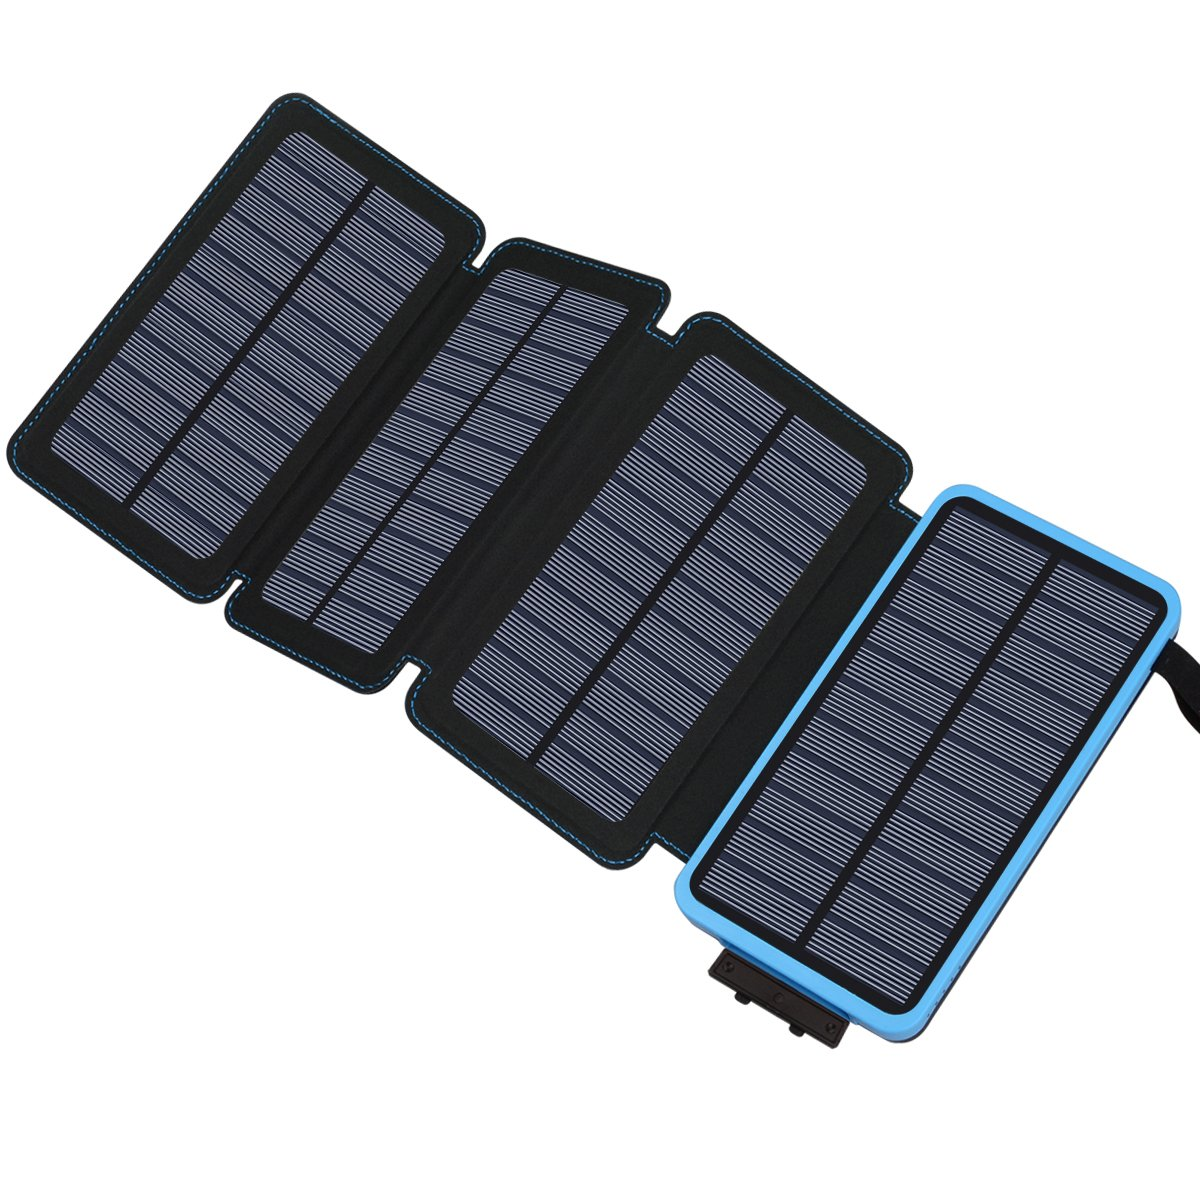 Hiluckey 25000mAh Solar Charger for Cell Phones, Battery Power Bank with 4 Fast Rechager Charging Solar Panels (Blue)